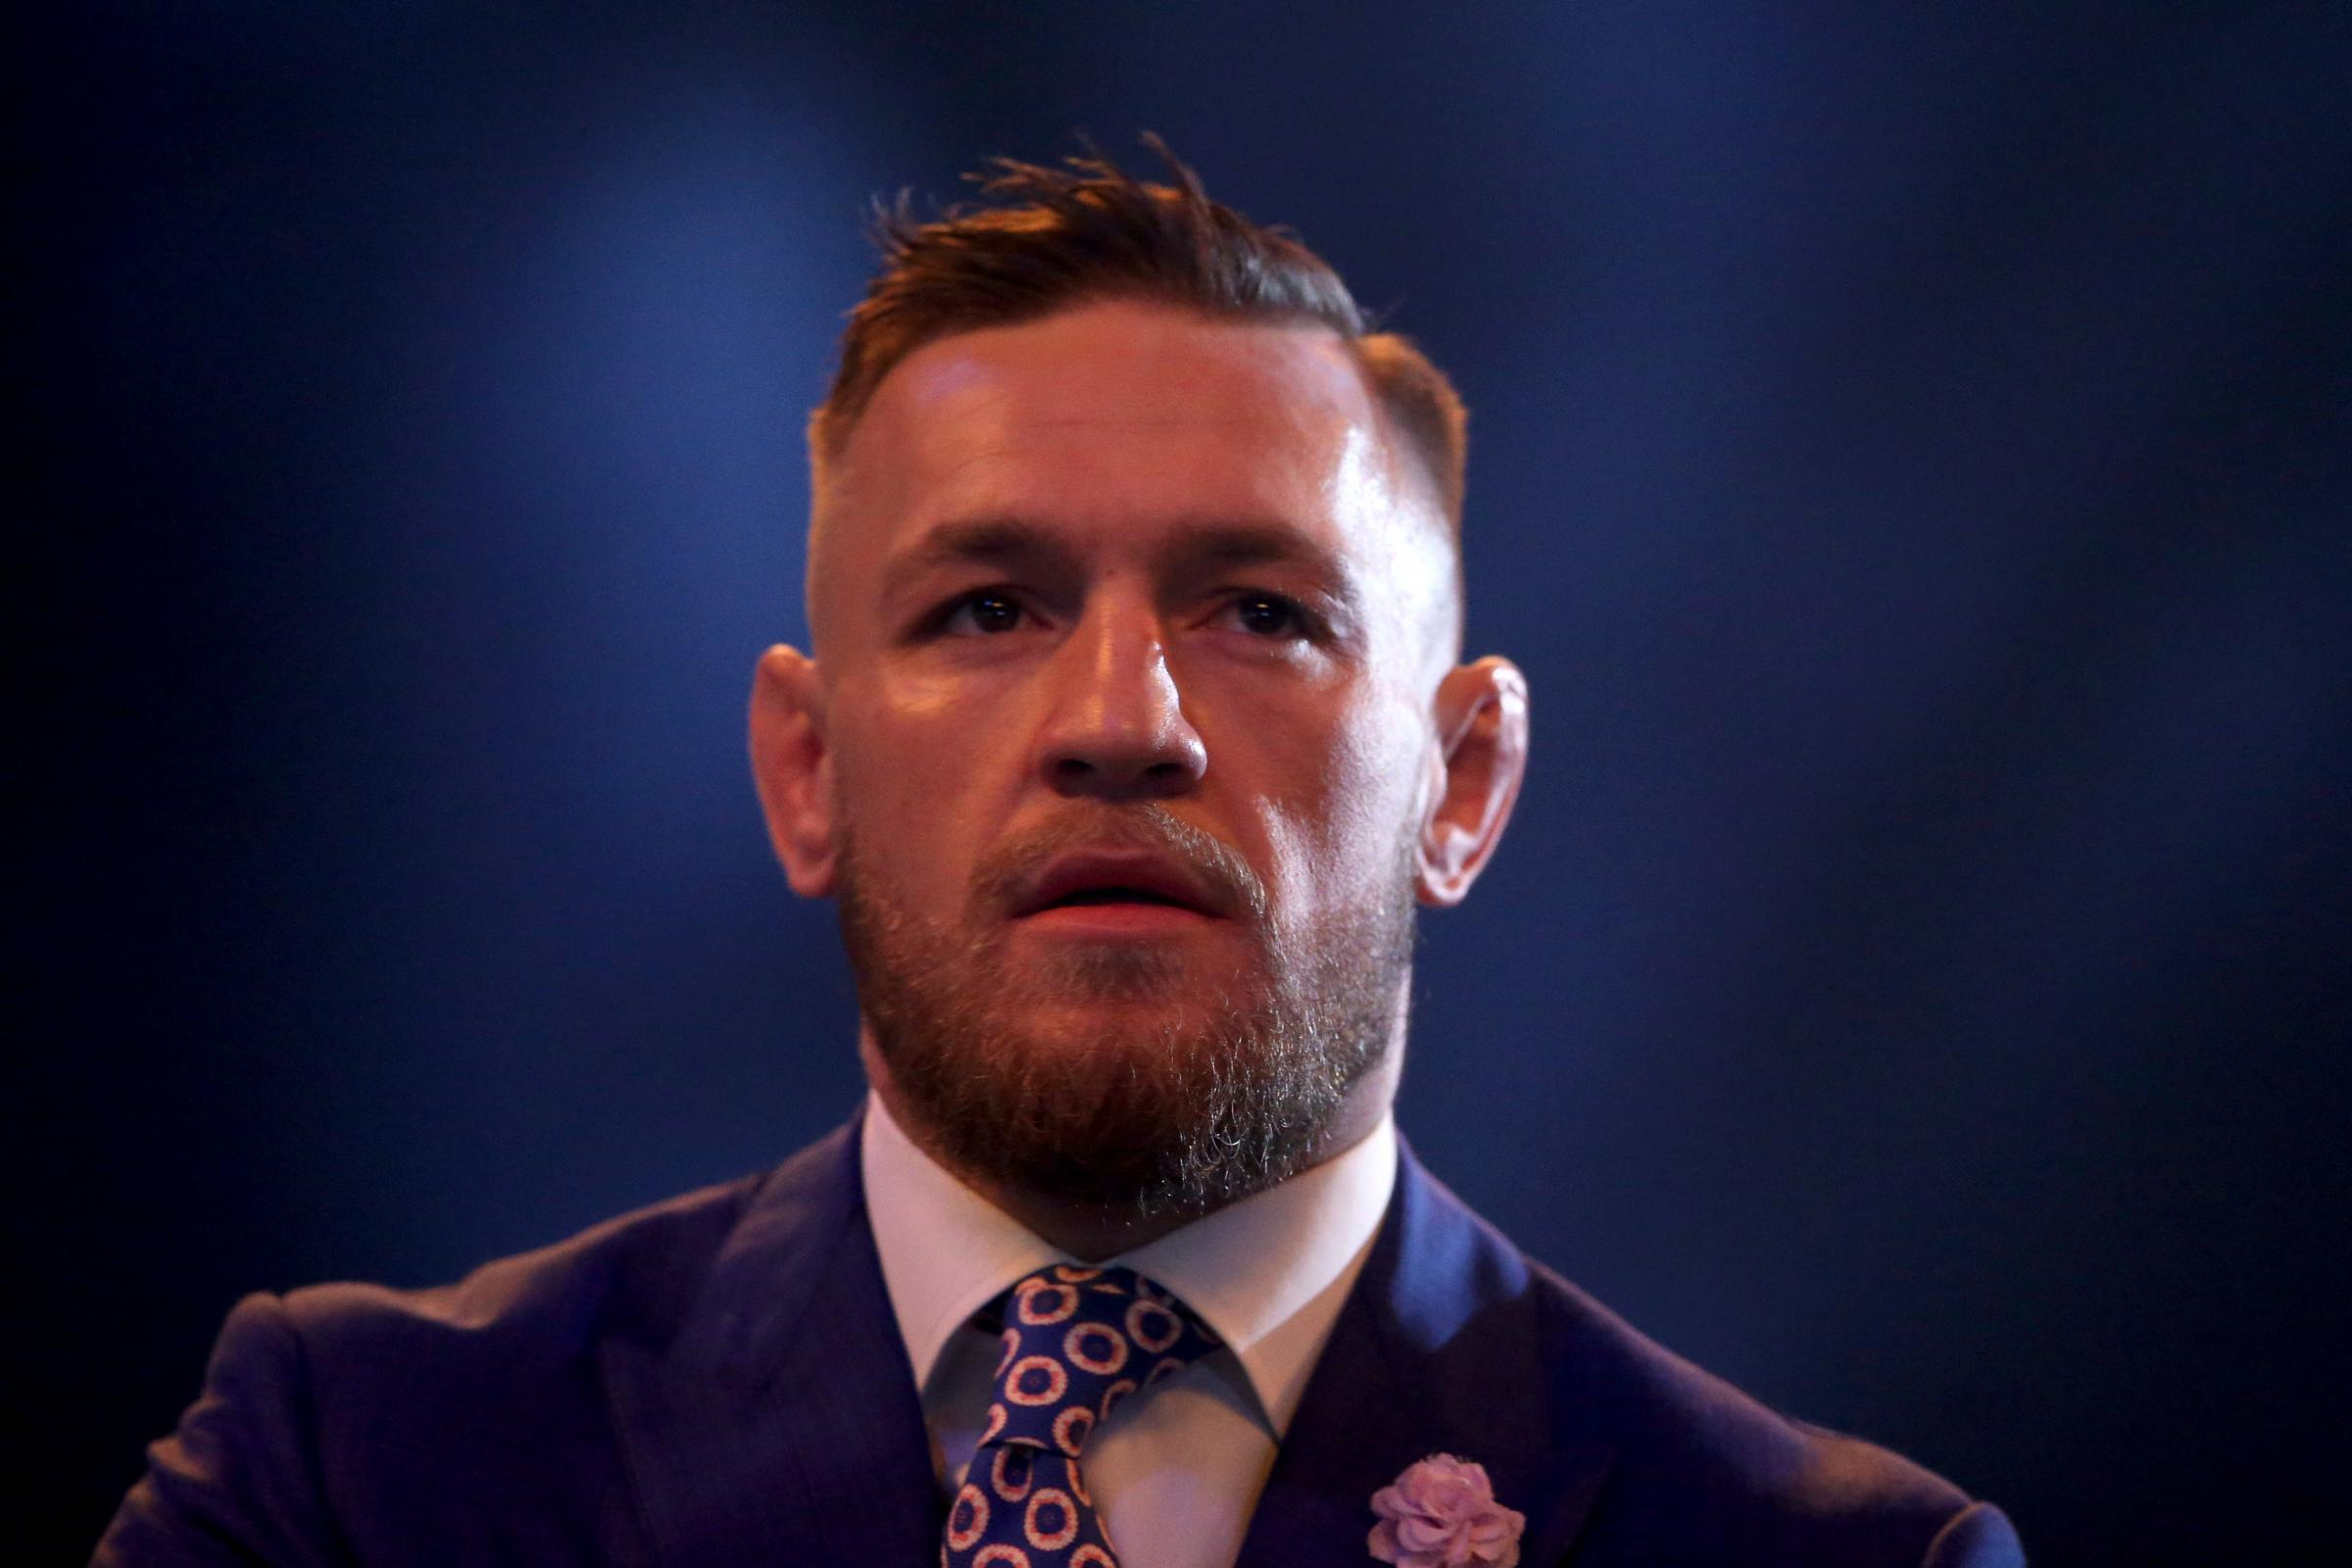 Conor McGregor returns to the UFC this weekend (Scott Heavey/PA)